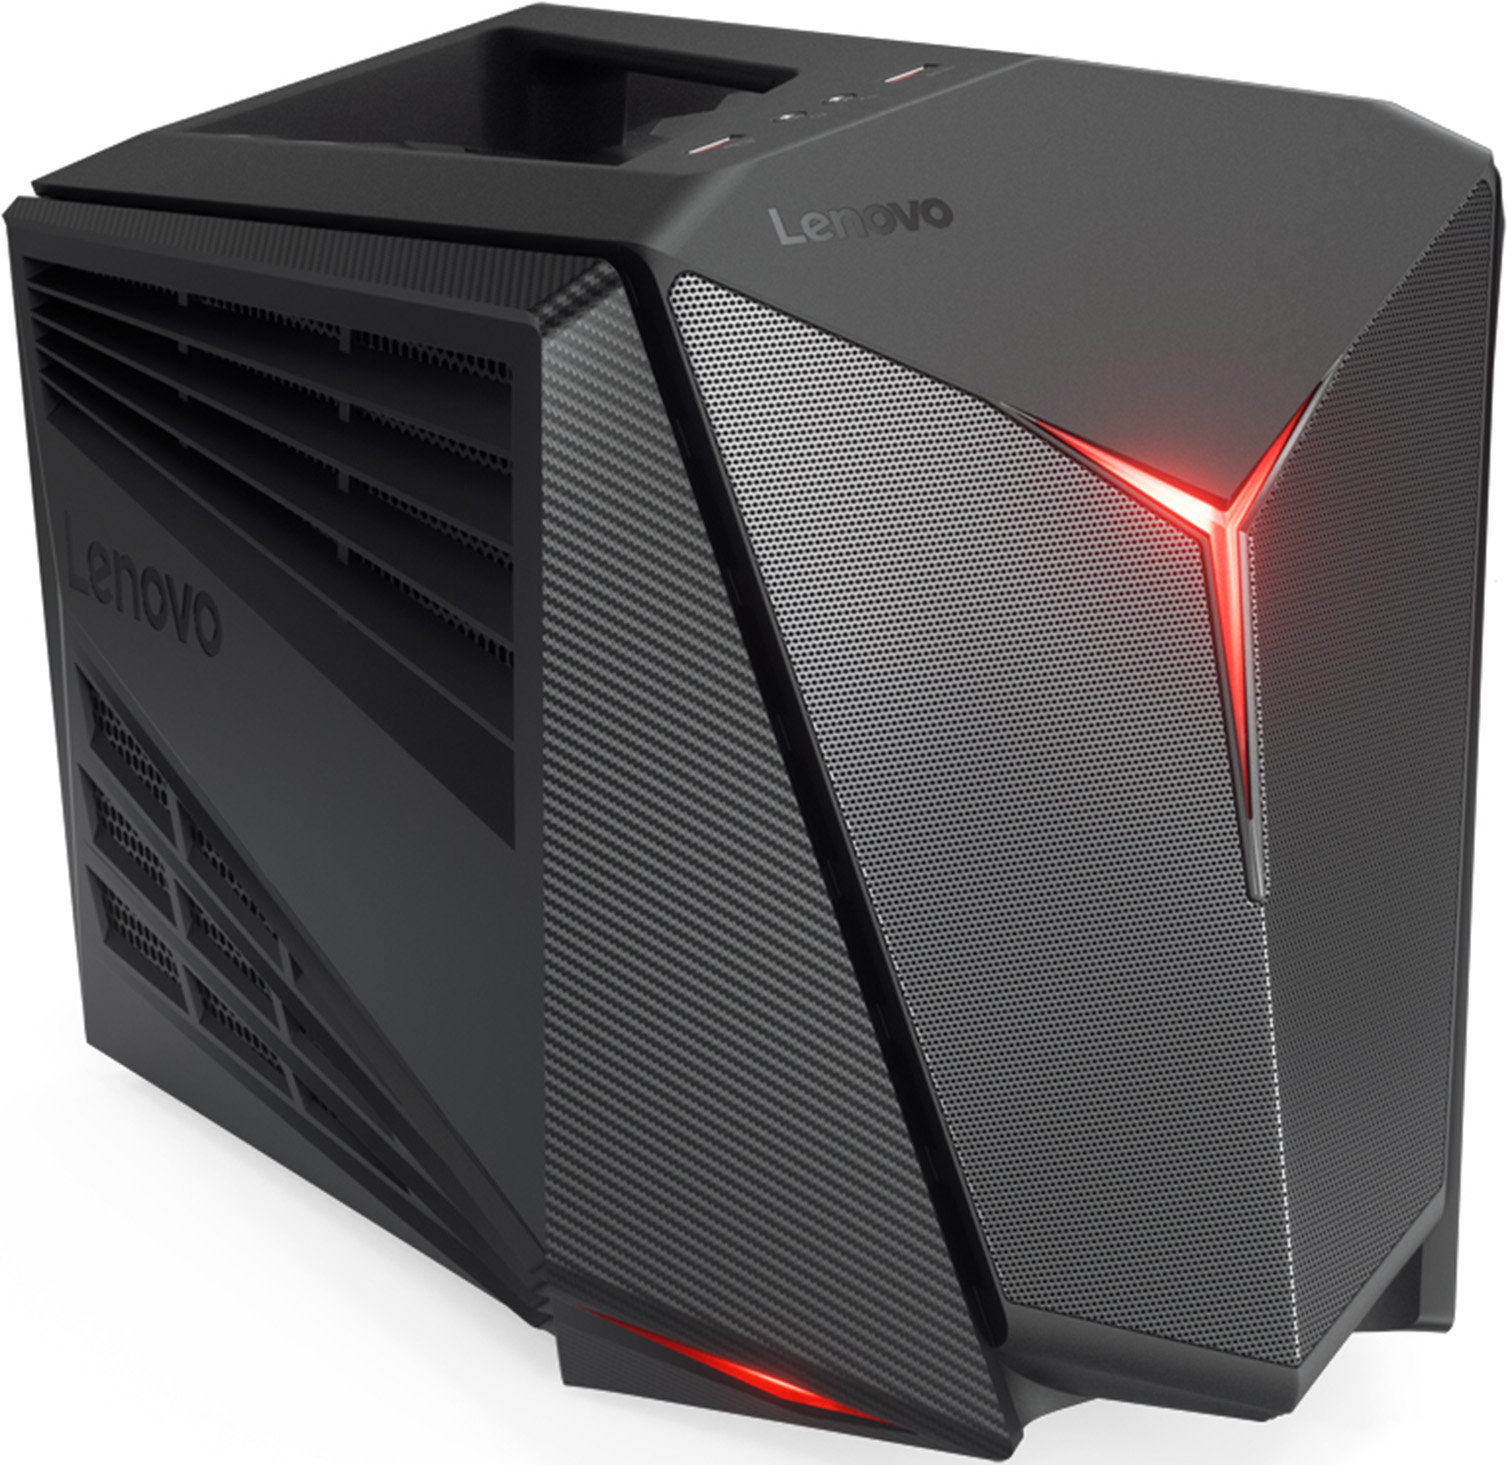 Lenovo Ideacentre Y710 Cube-15ISH Signature Edition Gaming Desktop (GeForce GTX 1080) Deal